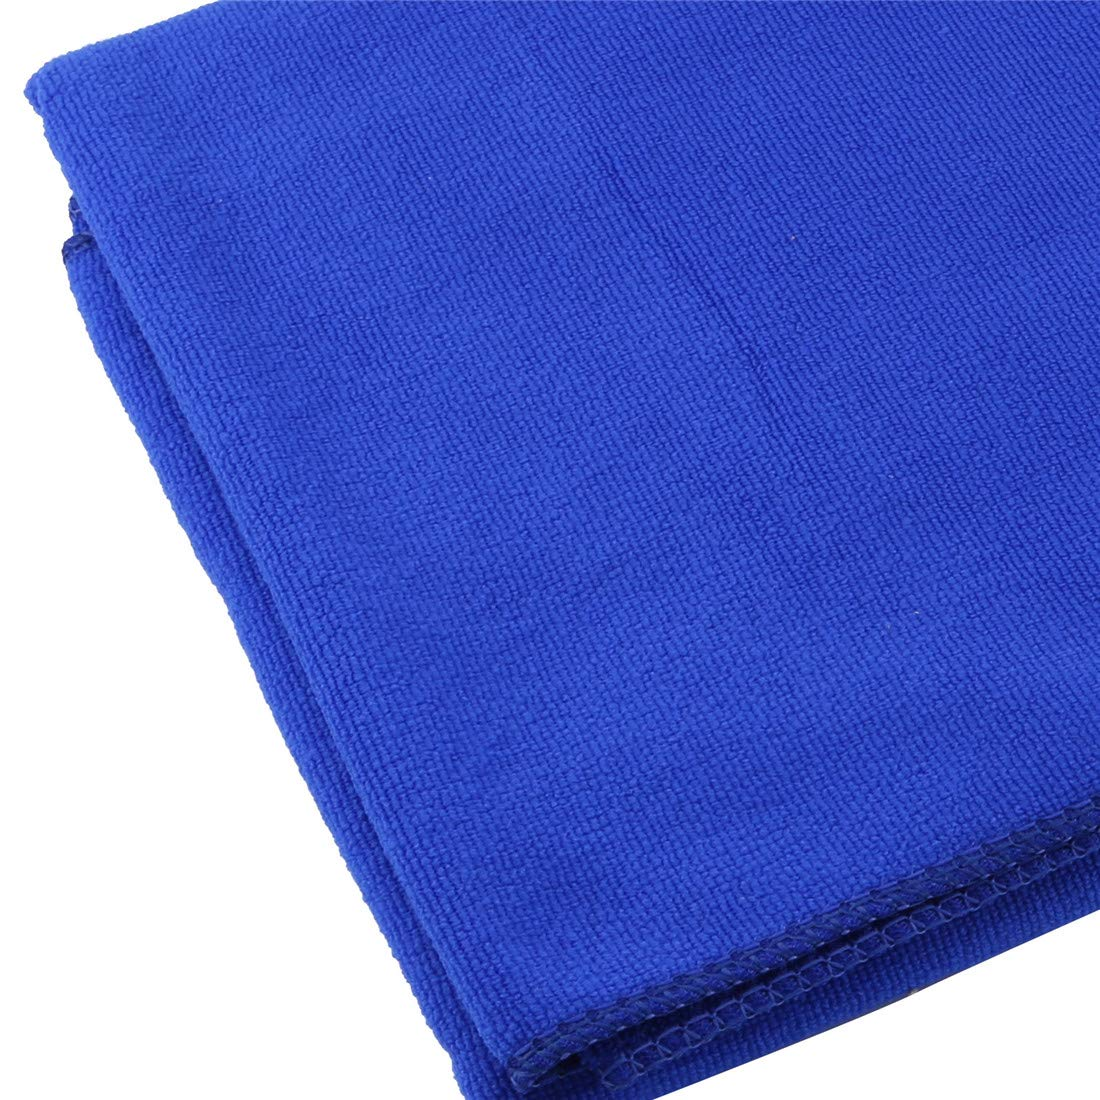 Queiting Extra Large Microfibre Towel Quick Drying Travel Beach Towel For Swimming Gym Sports Blue